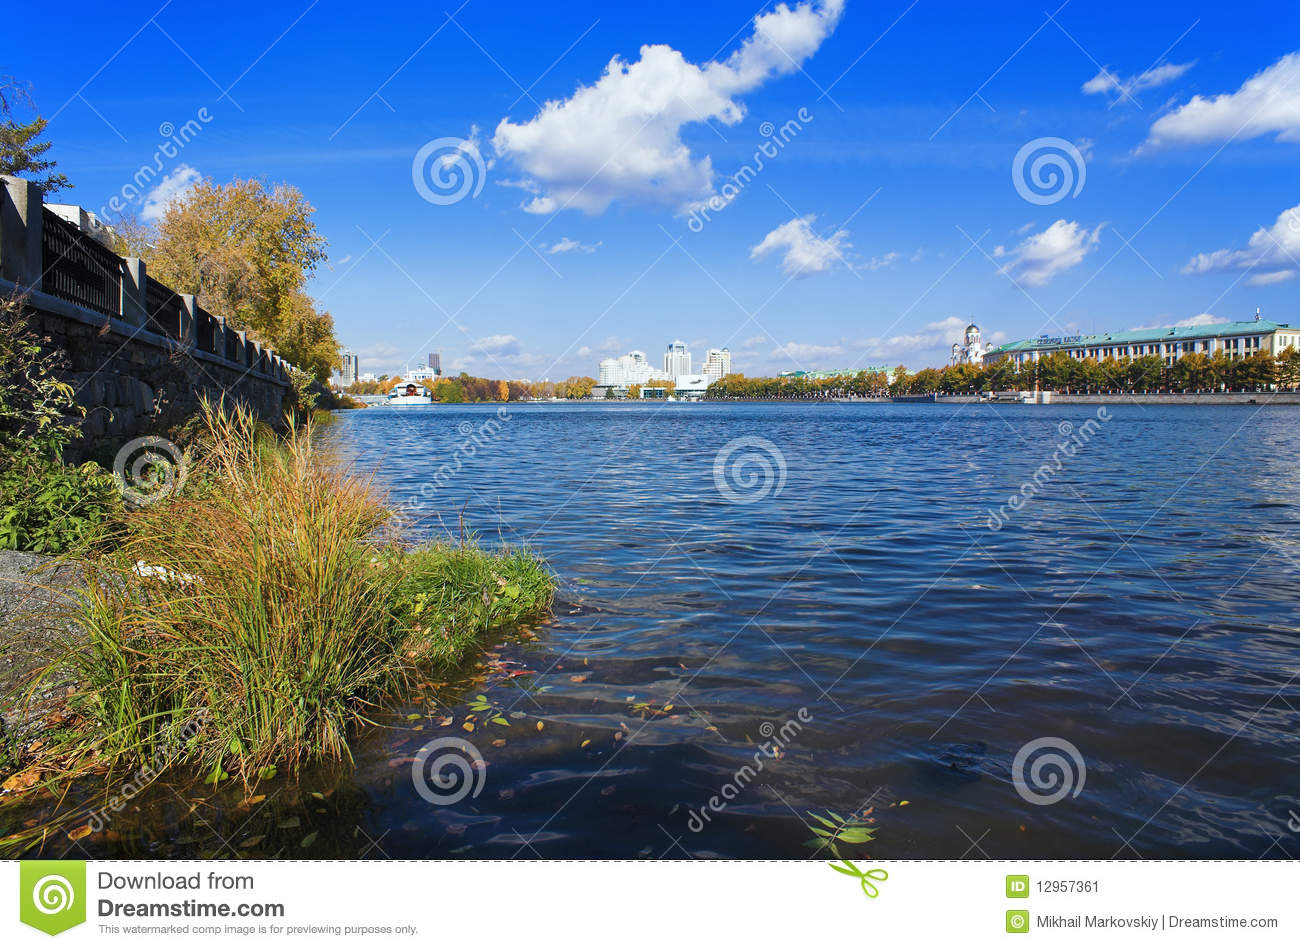 Pond embankment and buildings stock image image 12957361 for Design of pond embankment